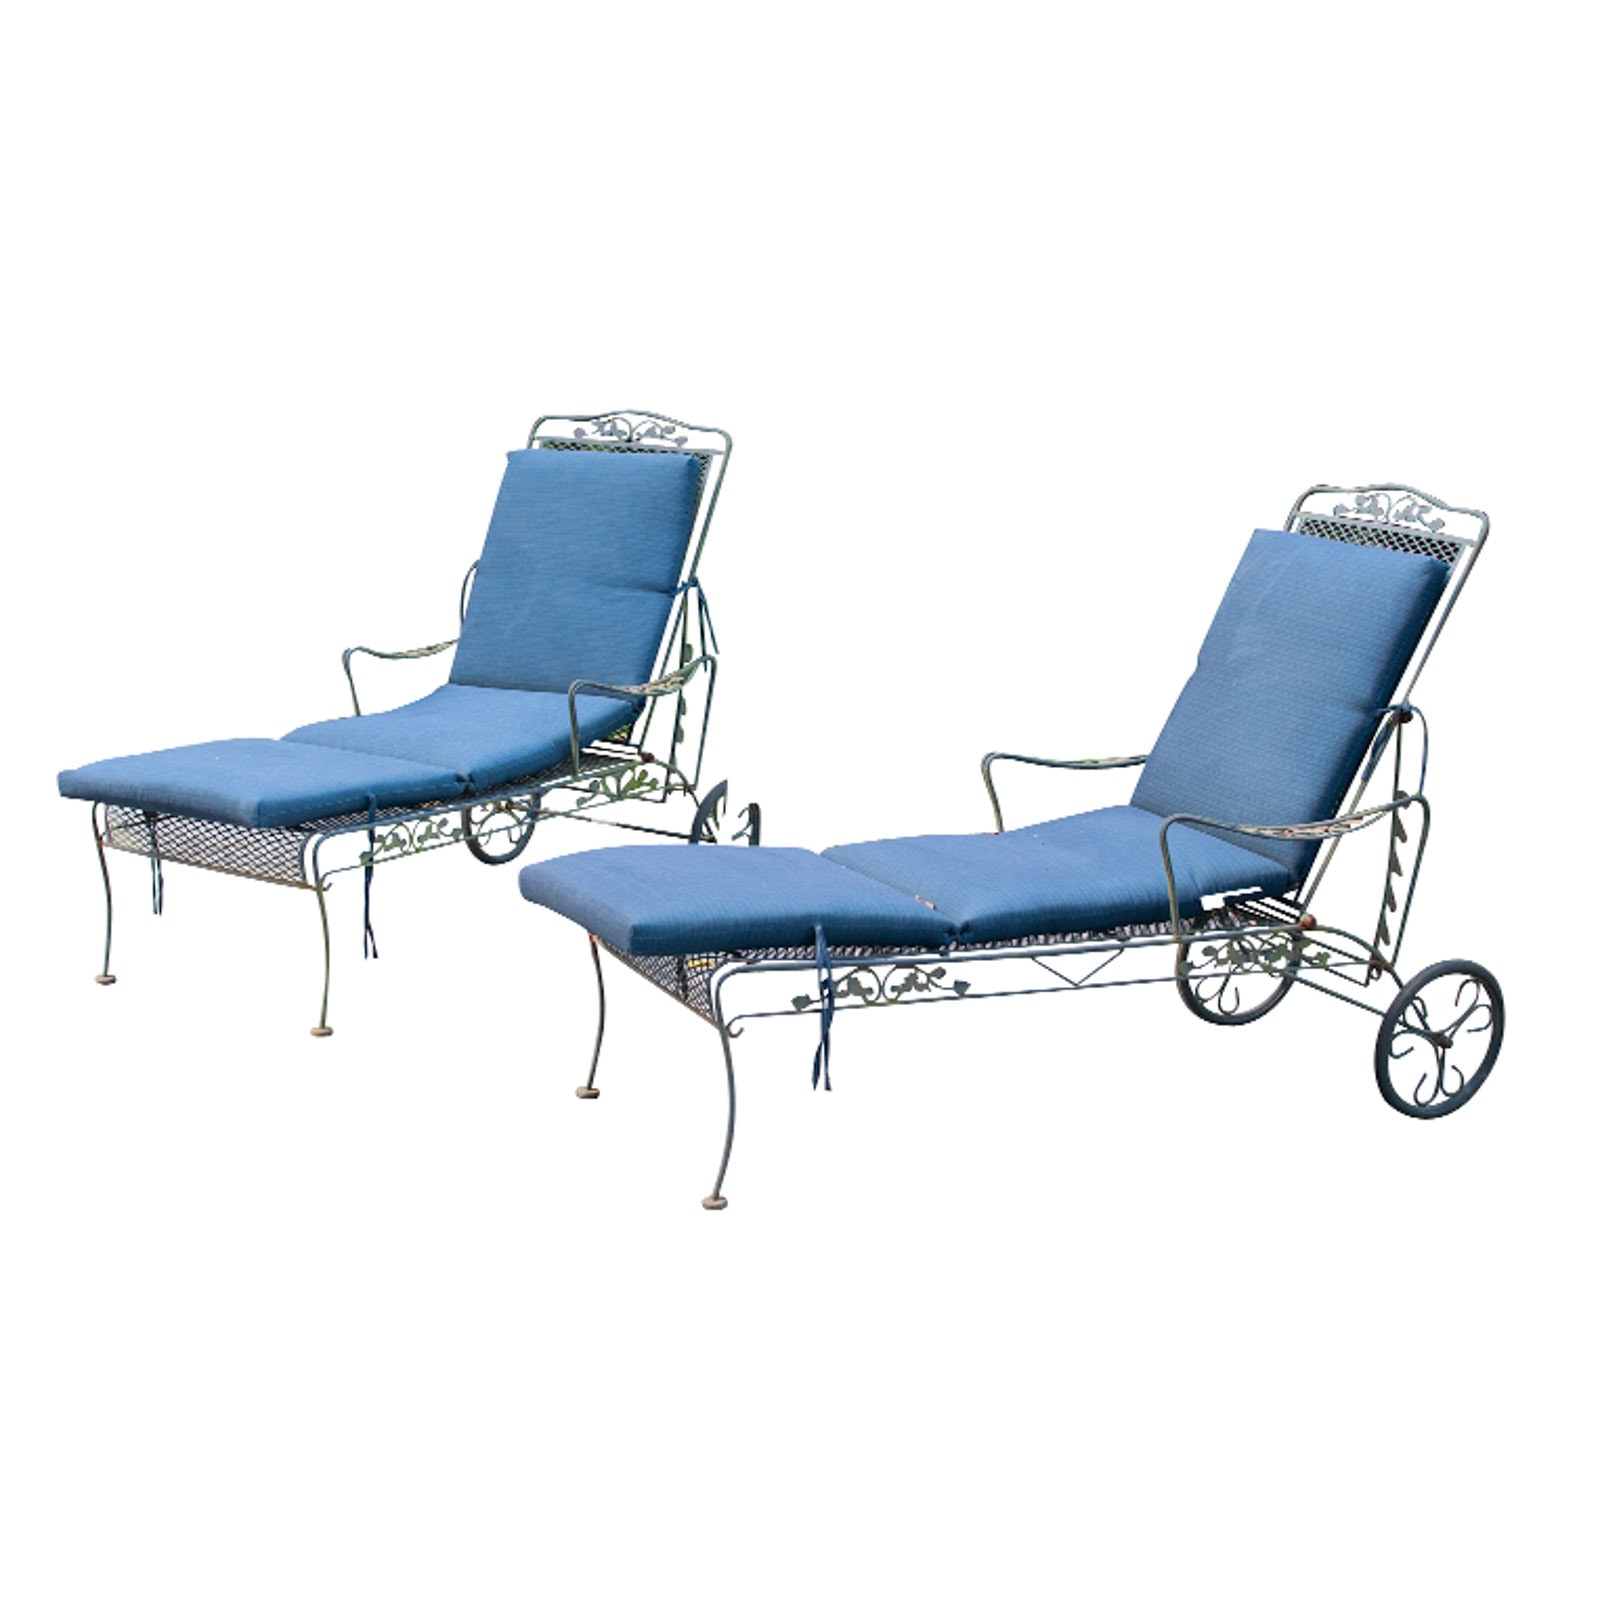 Pair of Outdoor Chaise Lounge Chairs